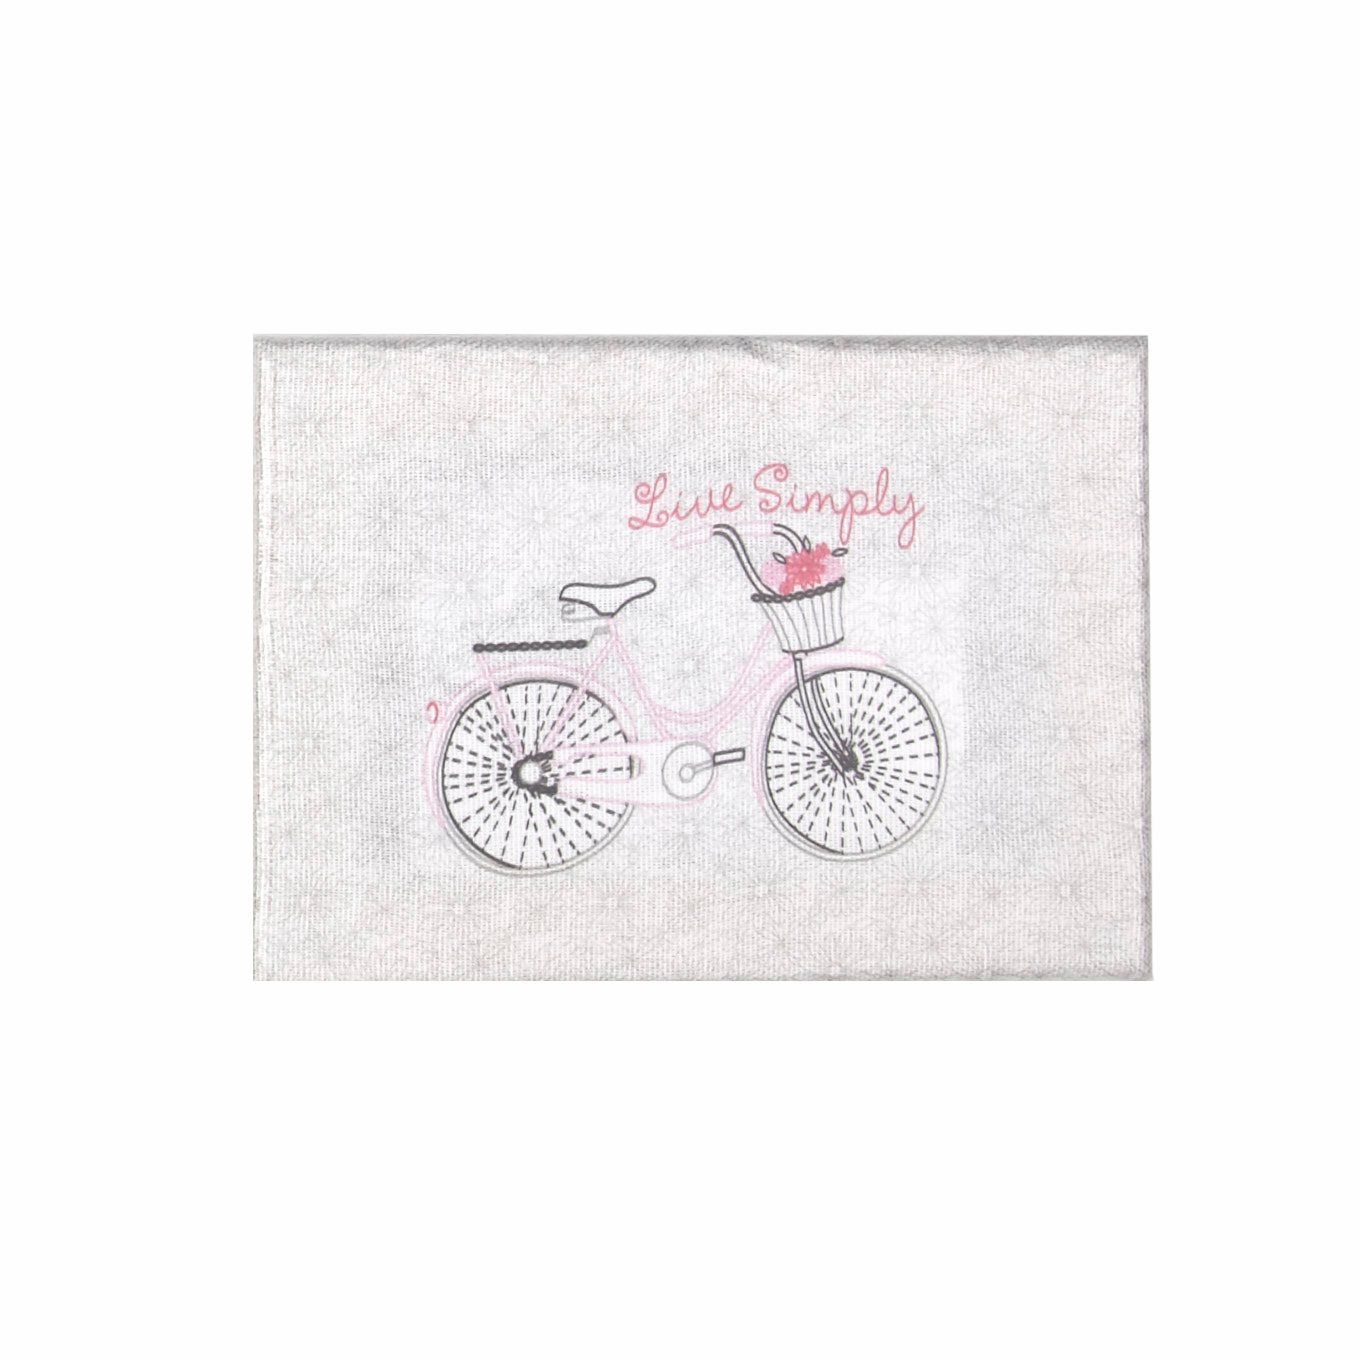 Image of Bicycle Live Simply Stretched Canvas Embroidery Kit